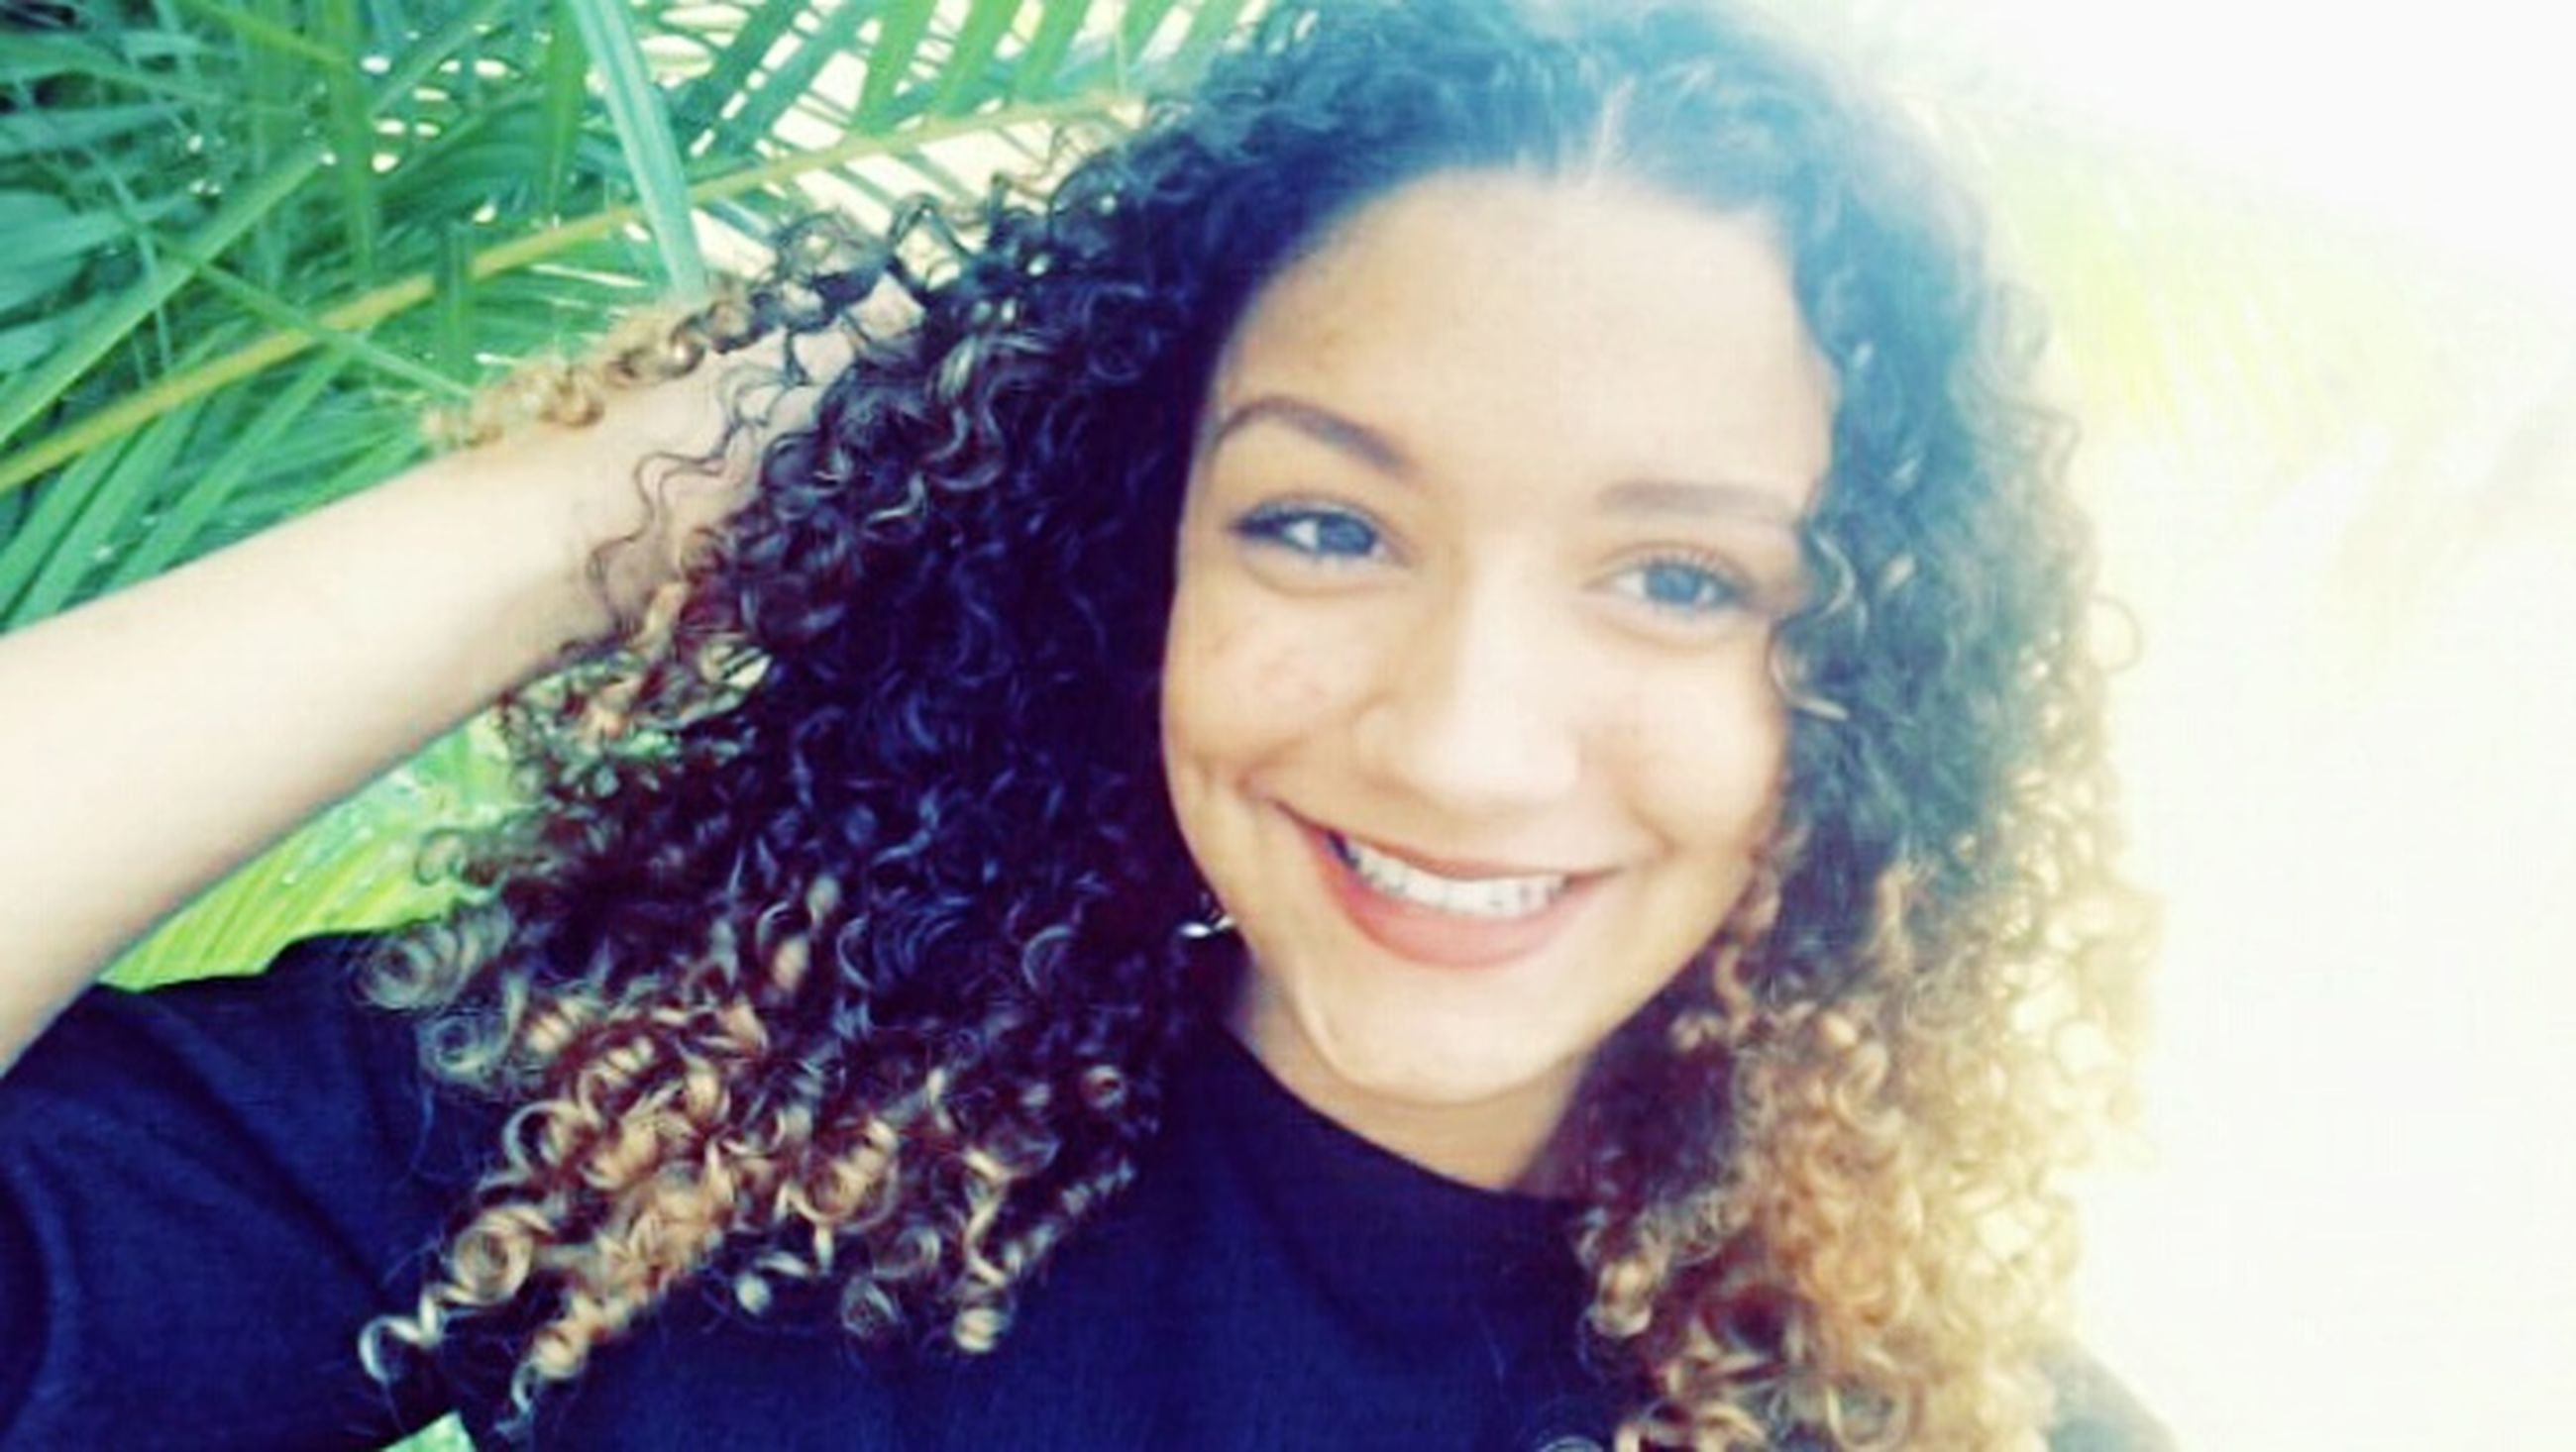 portrait, looking at camera, smiling, headshot, cheerful, happiness, only women, young adult, one woman only, one person, human body part, one young woman only, adults only, close-up, relaxation, people, sunlight, serene people, adult, outdoors, young women, females, women, beautiful woman, human arm, curly hair, nature, day, freshness